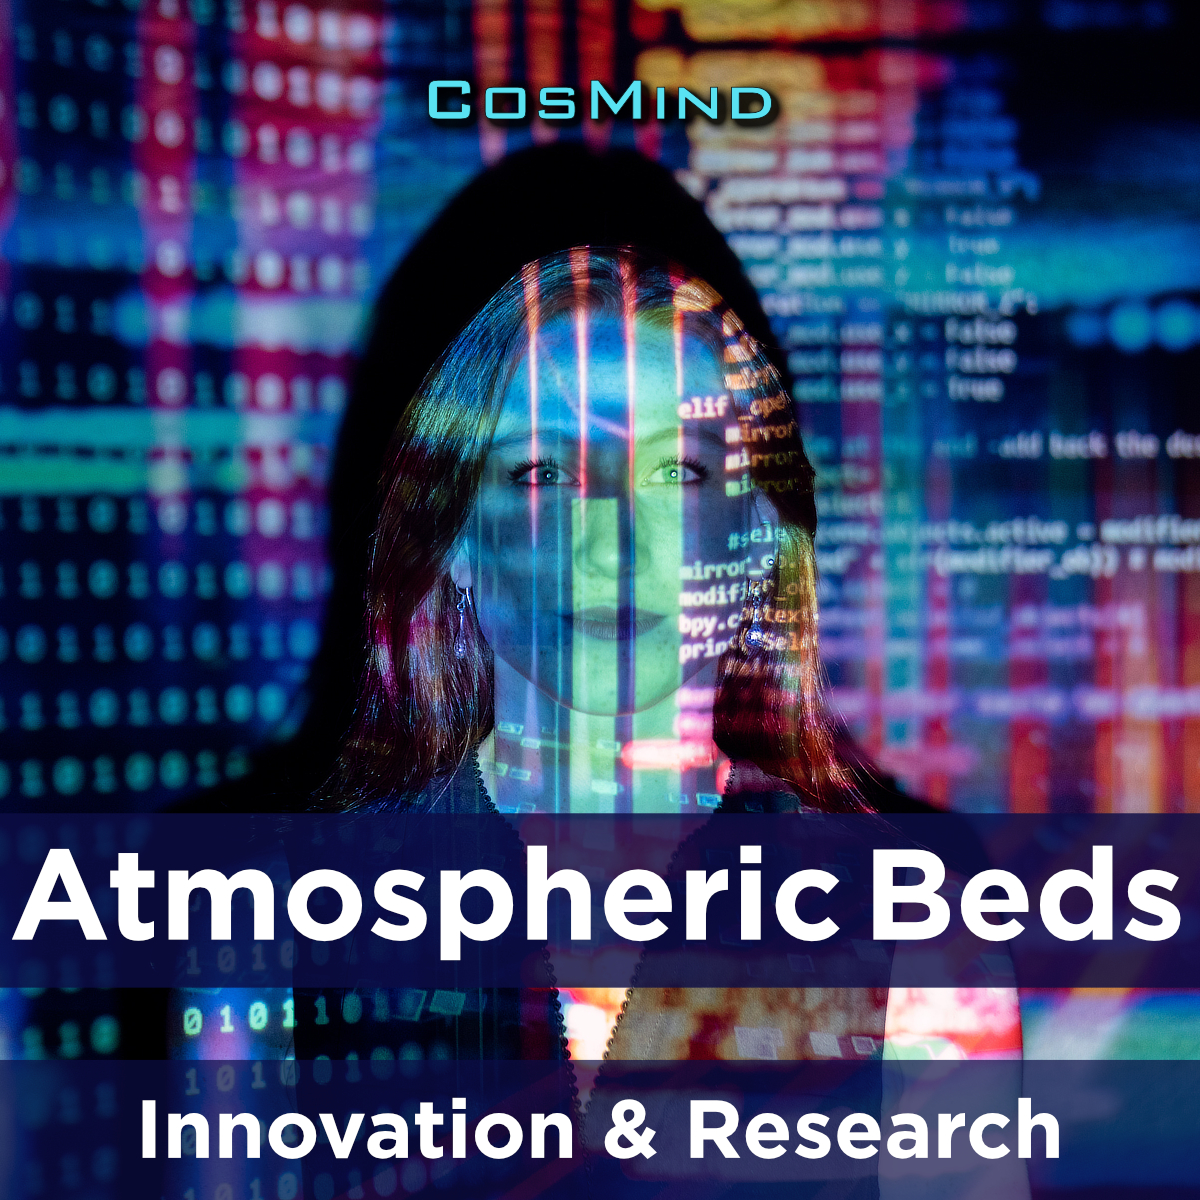 Atmospheric Beds